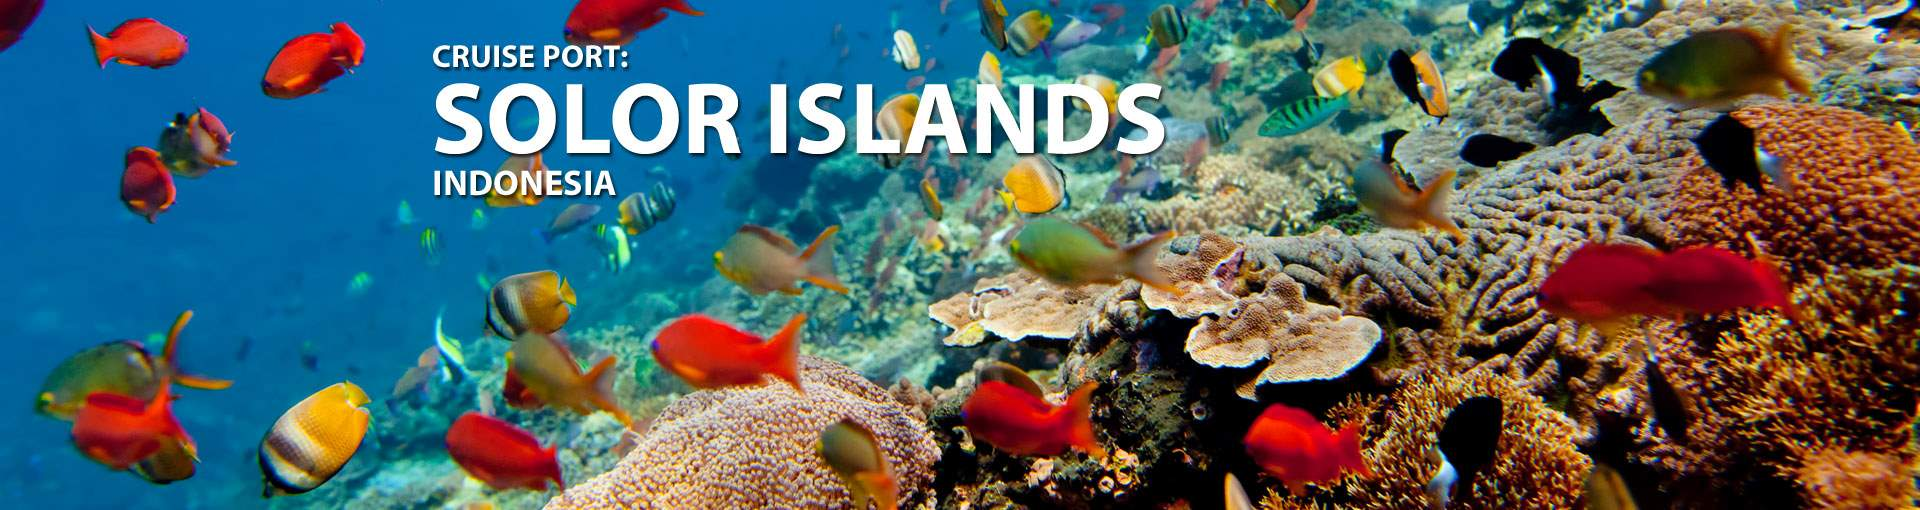 Cruises to Solor Islands, Indonesia